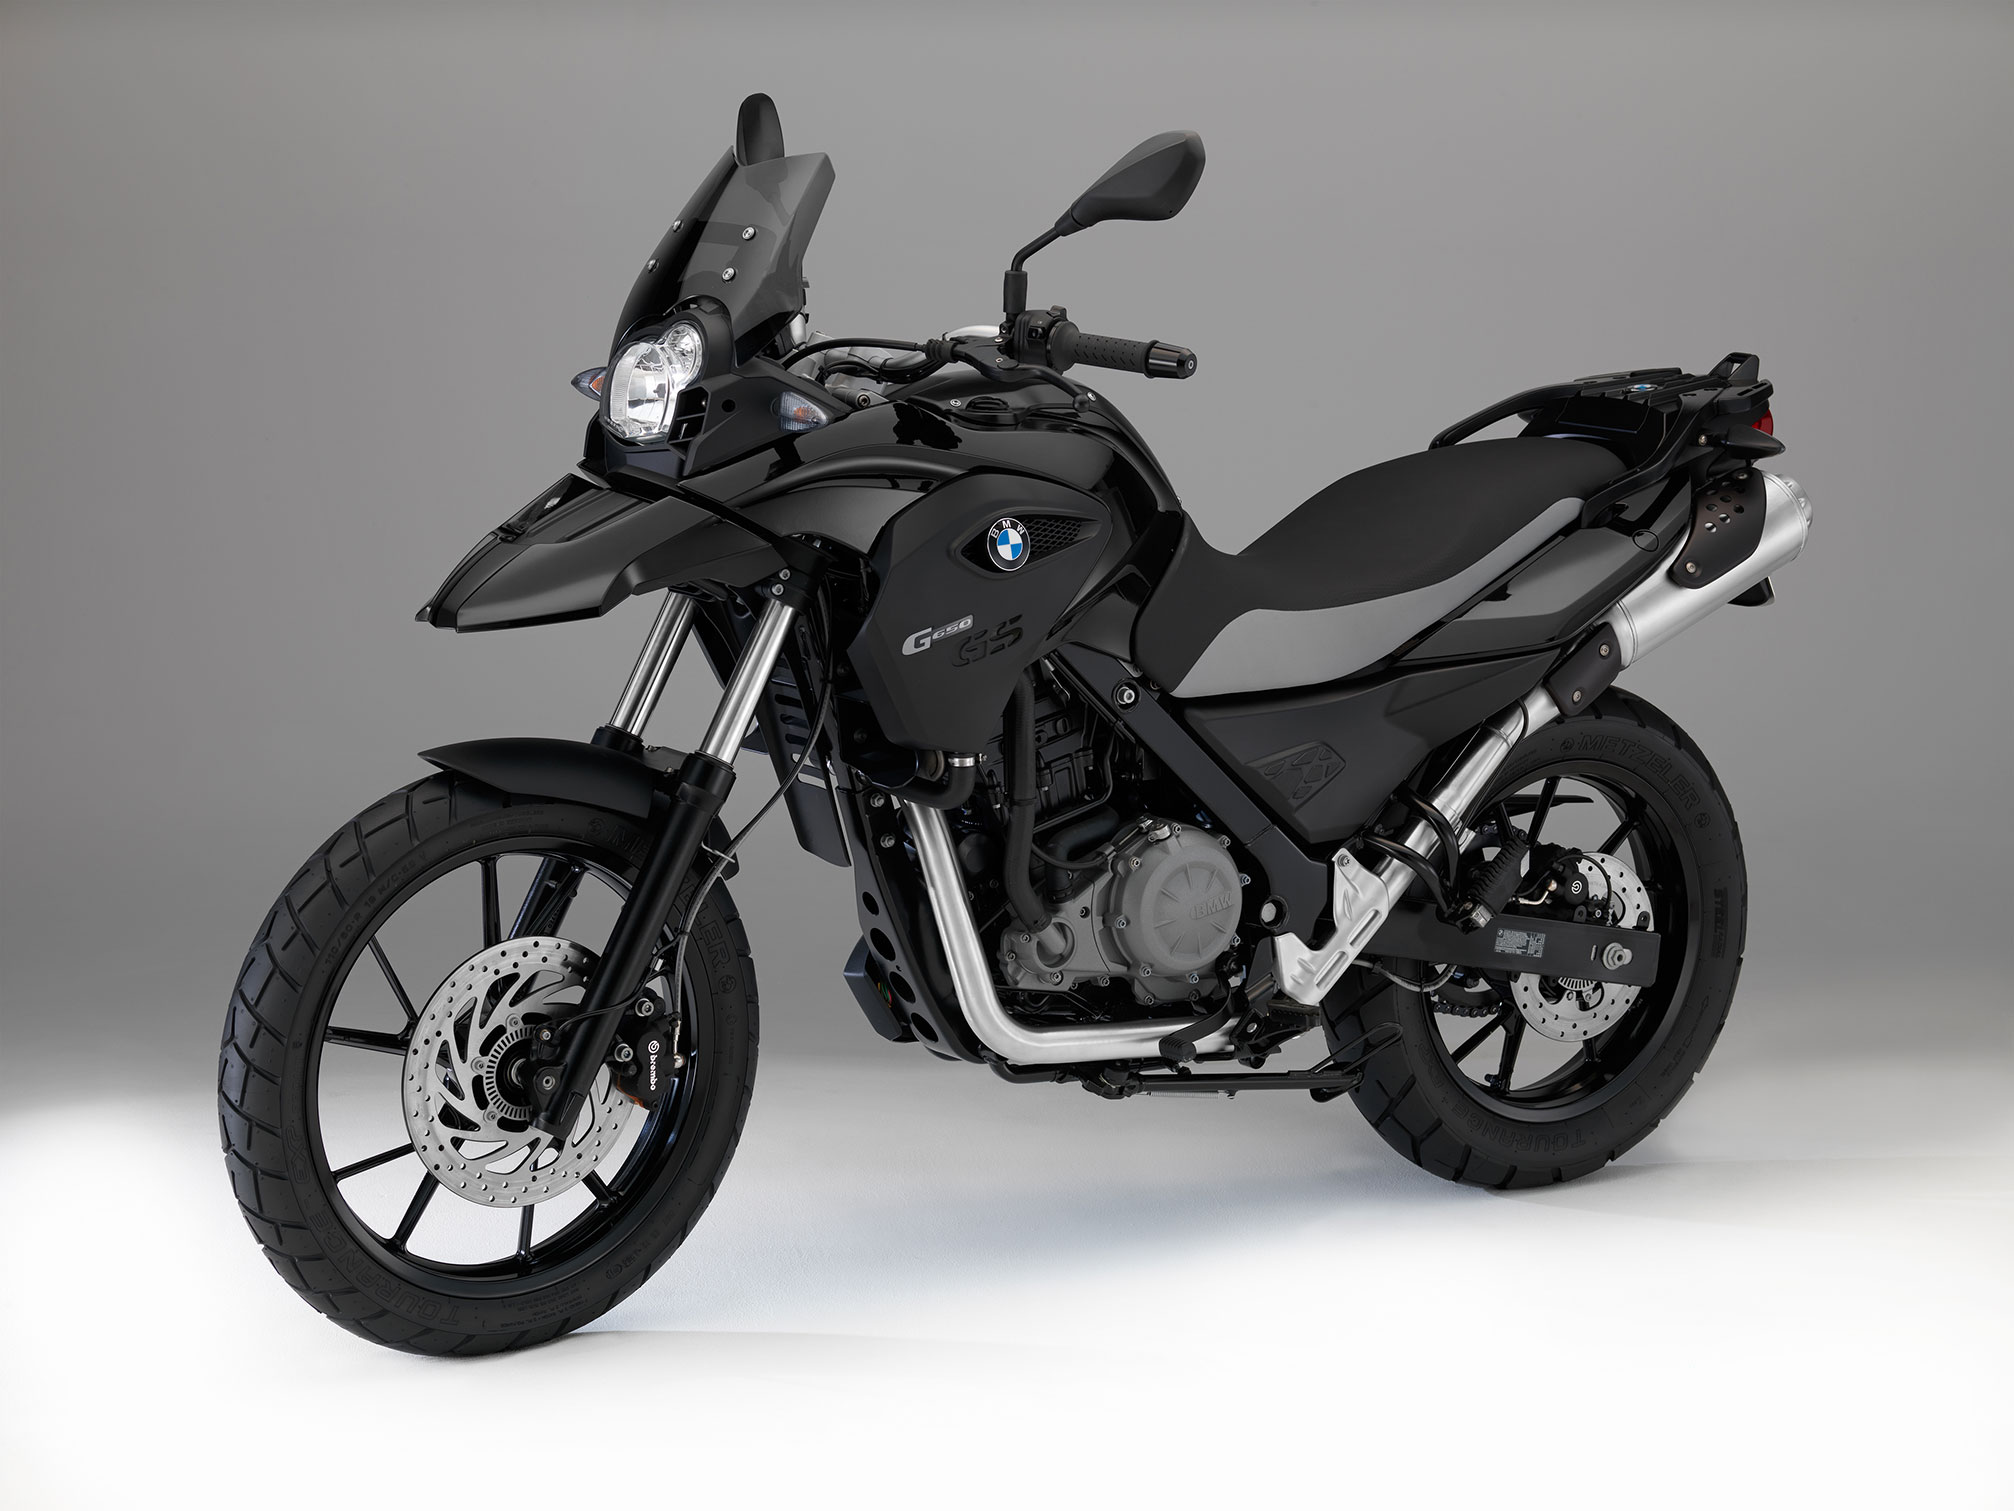 2014 BMW G650GS Review